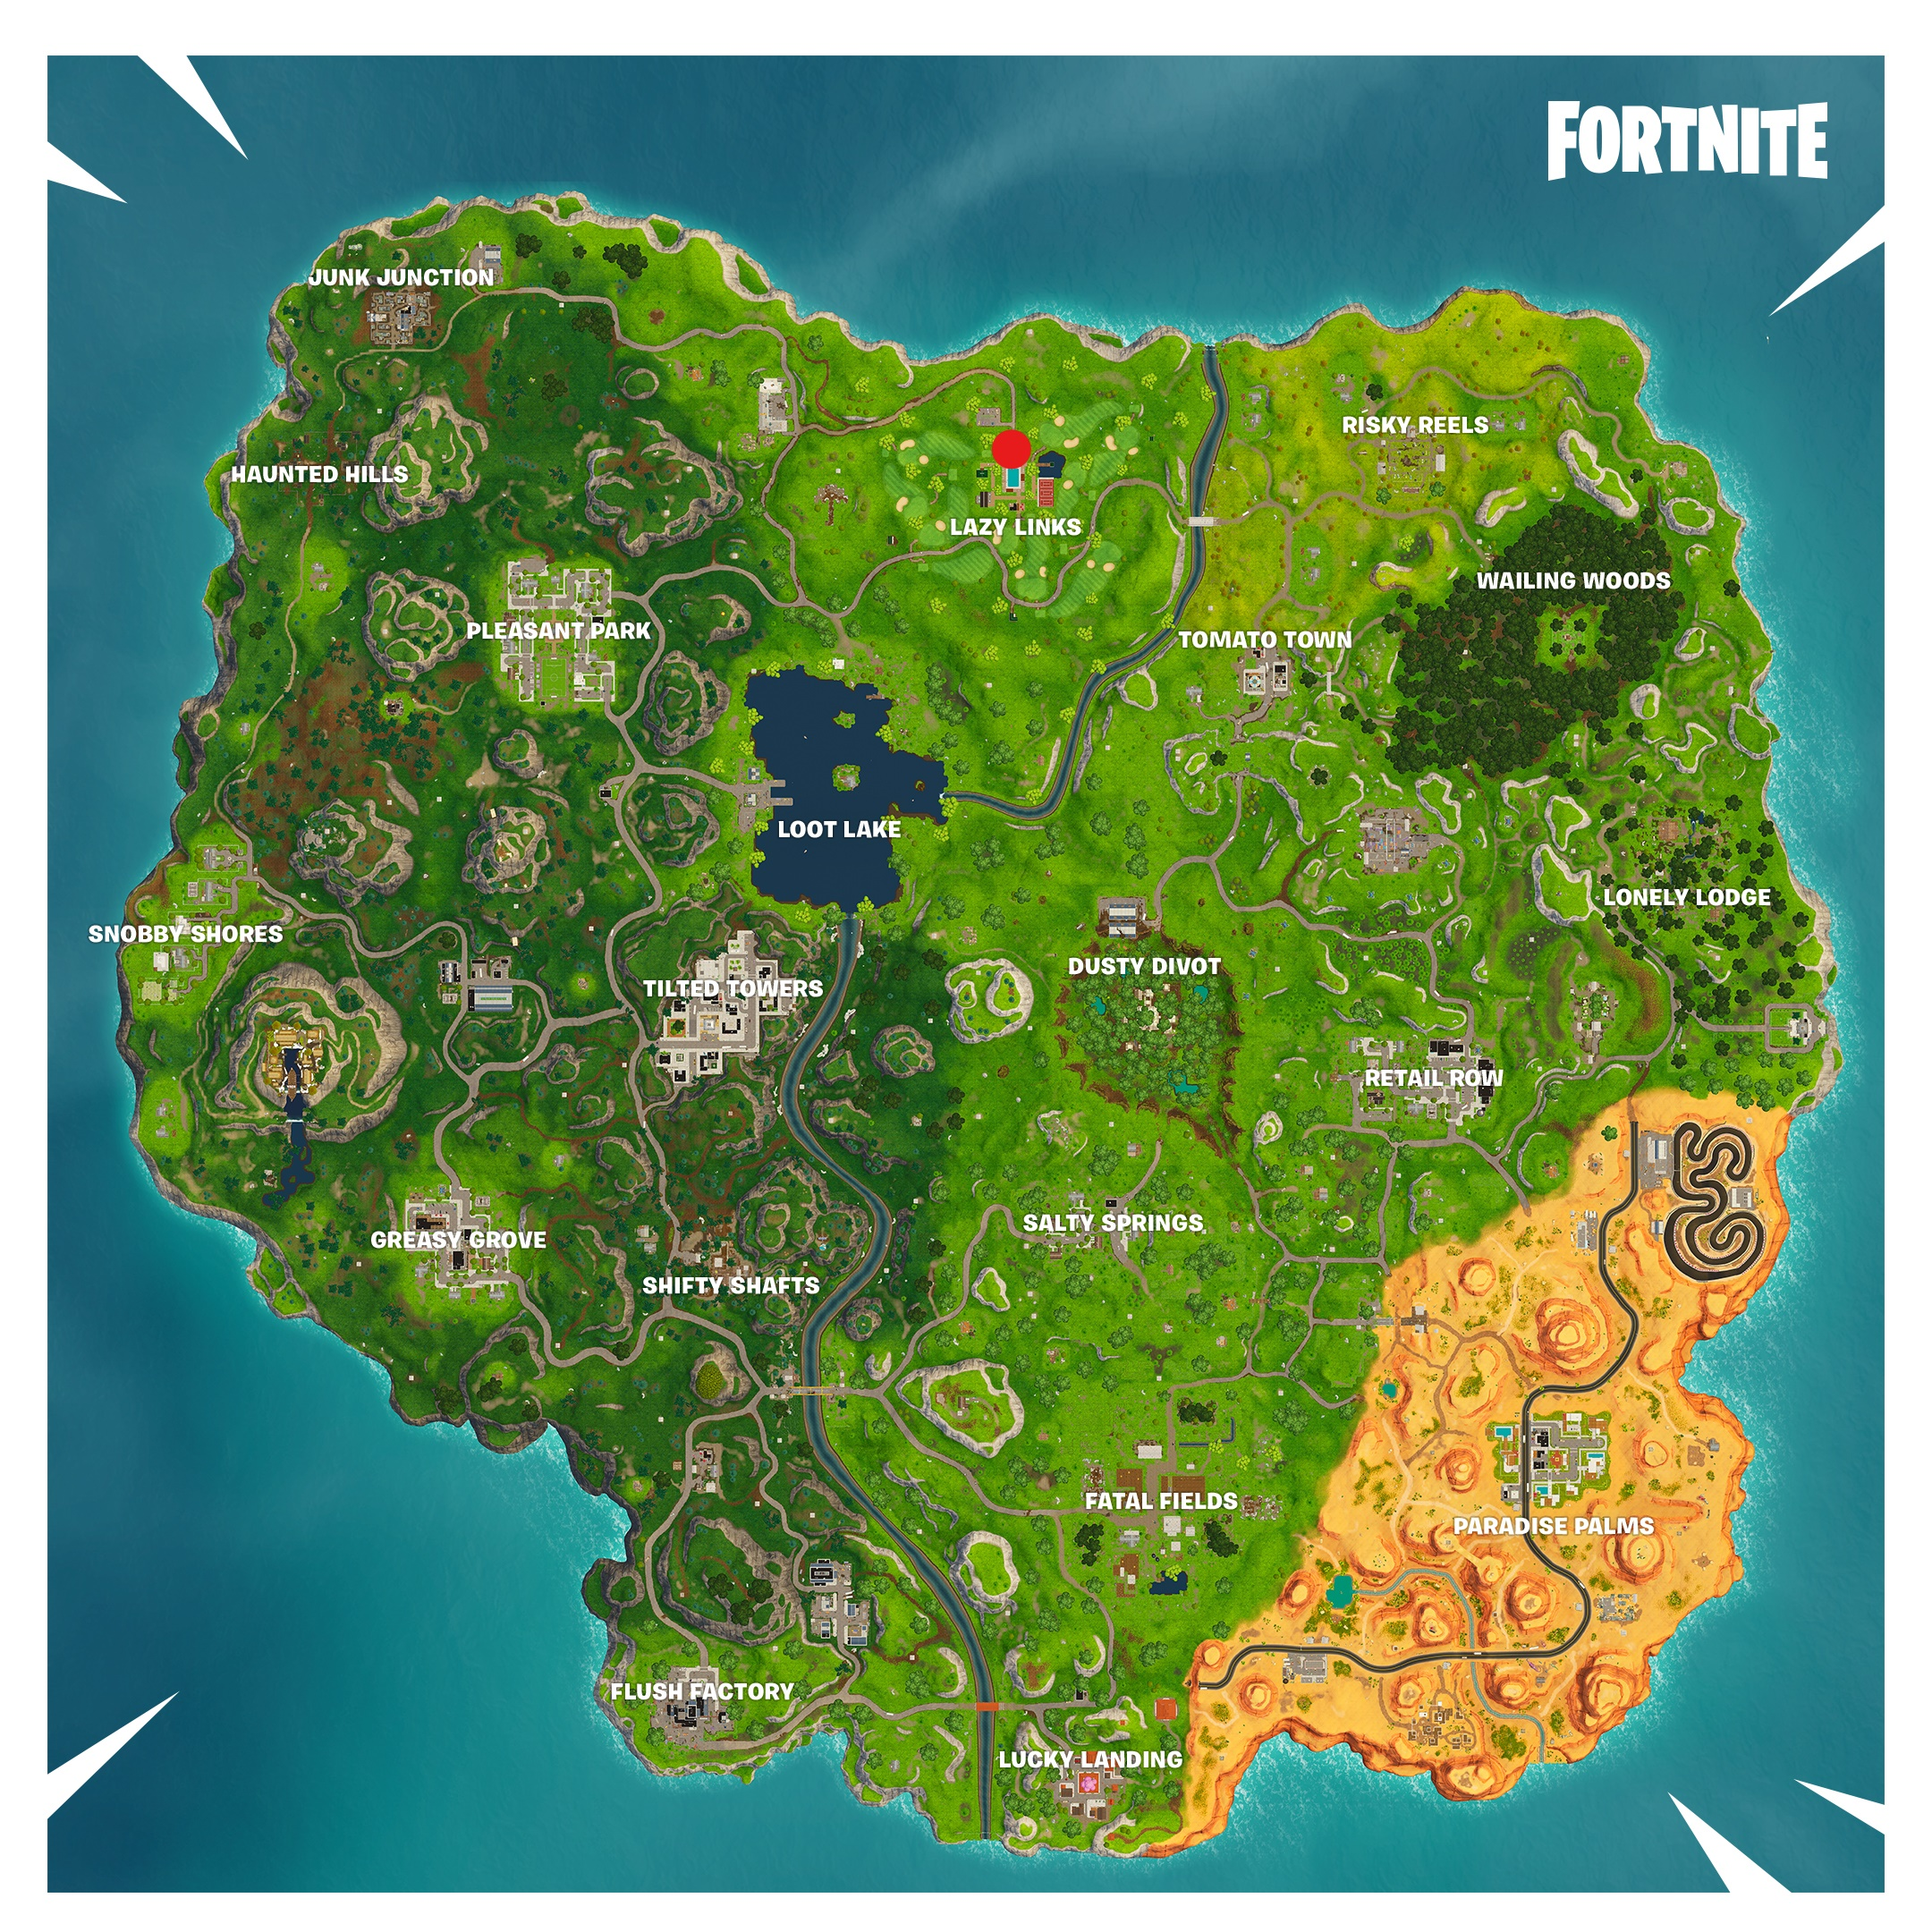 if you look at the loading screen you can see the very faint outline of the battle star - fortnite battle star loading screen 5